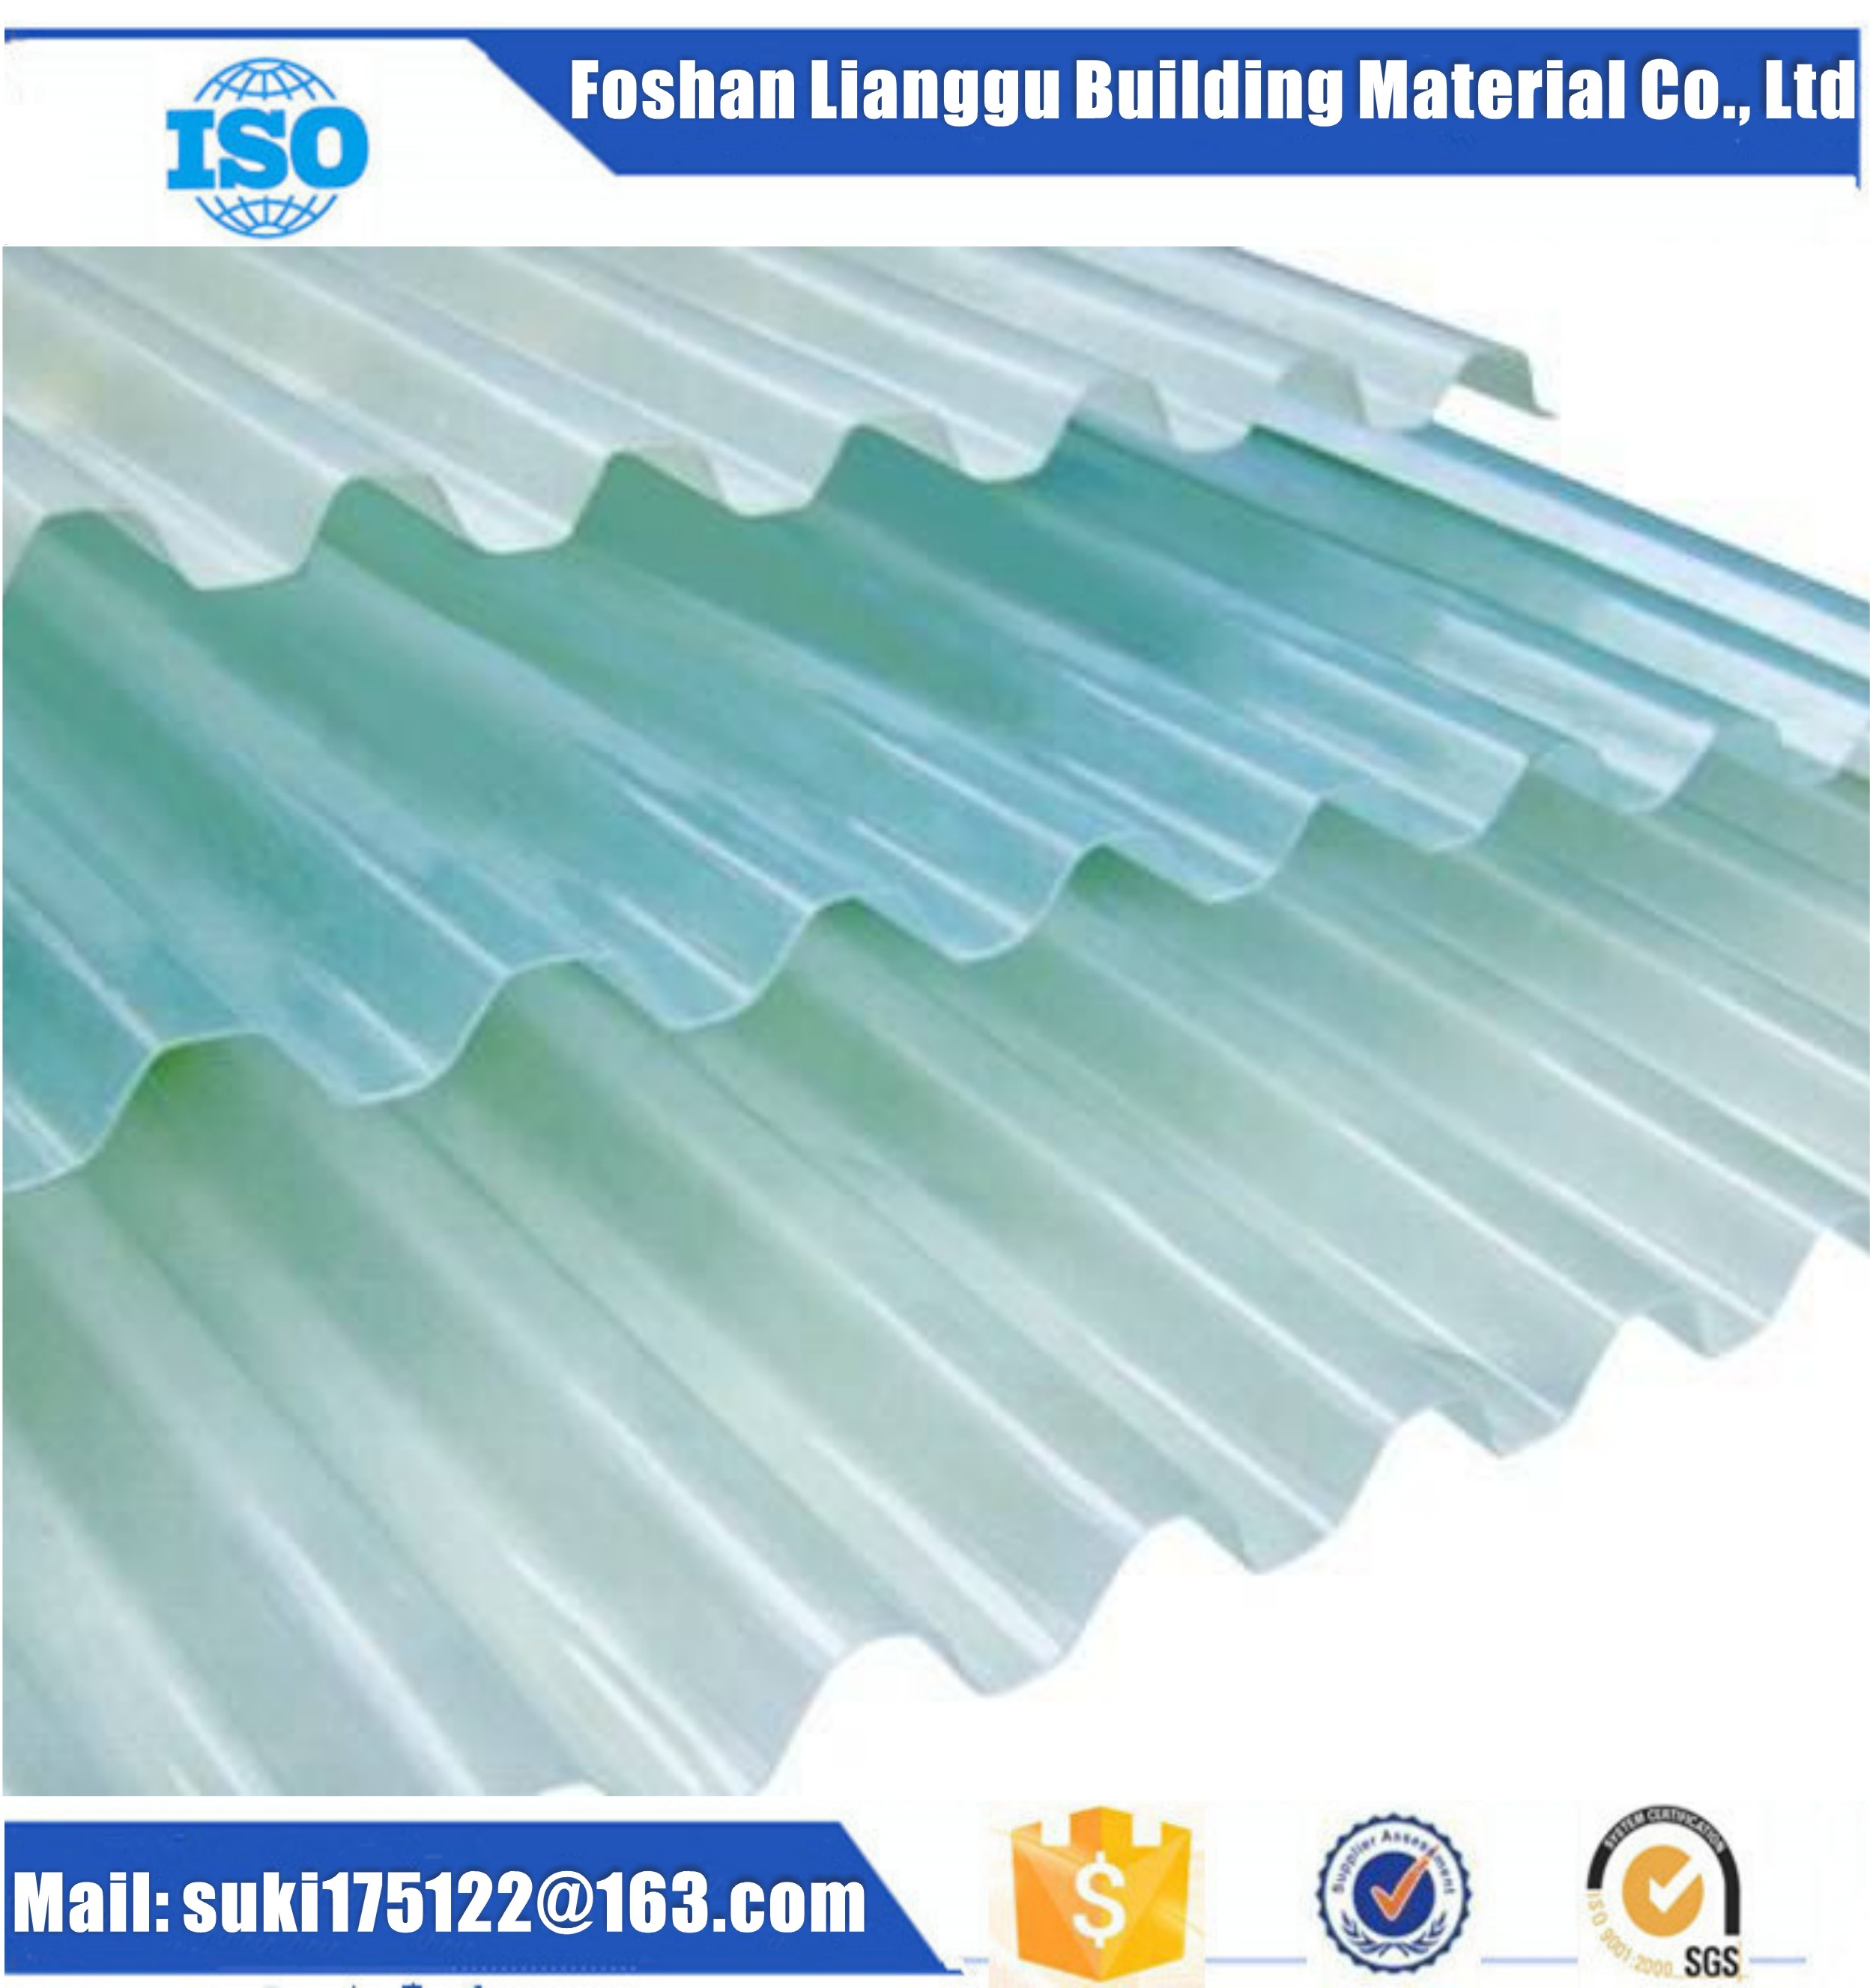 FRP Anticorrosion Roof Sheet FRP Anti-corrosive Roofing Sheet